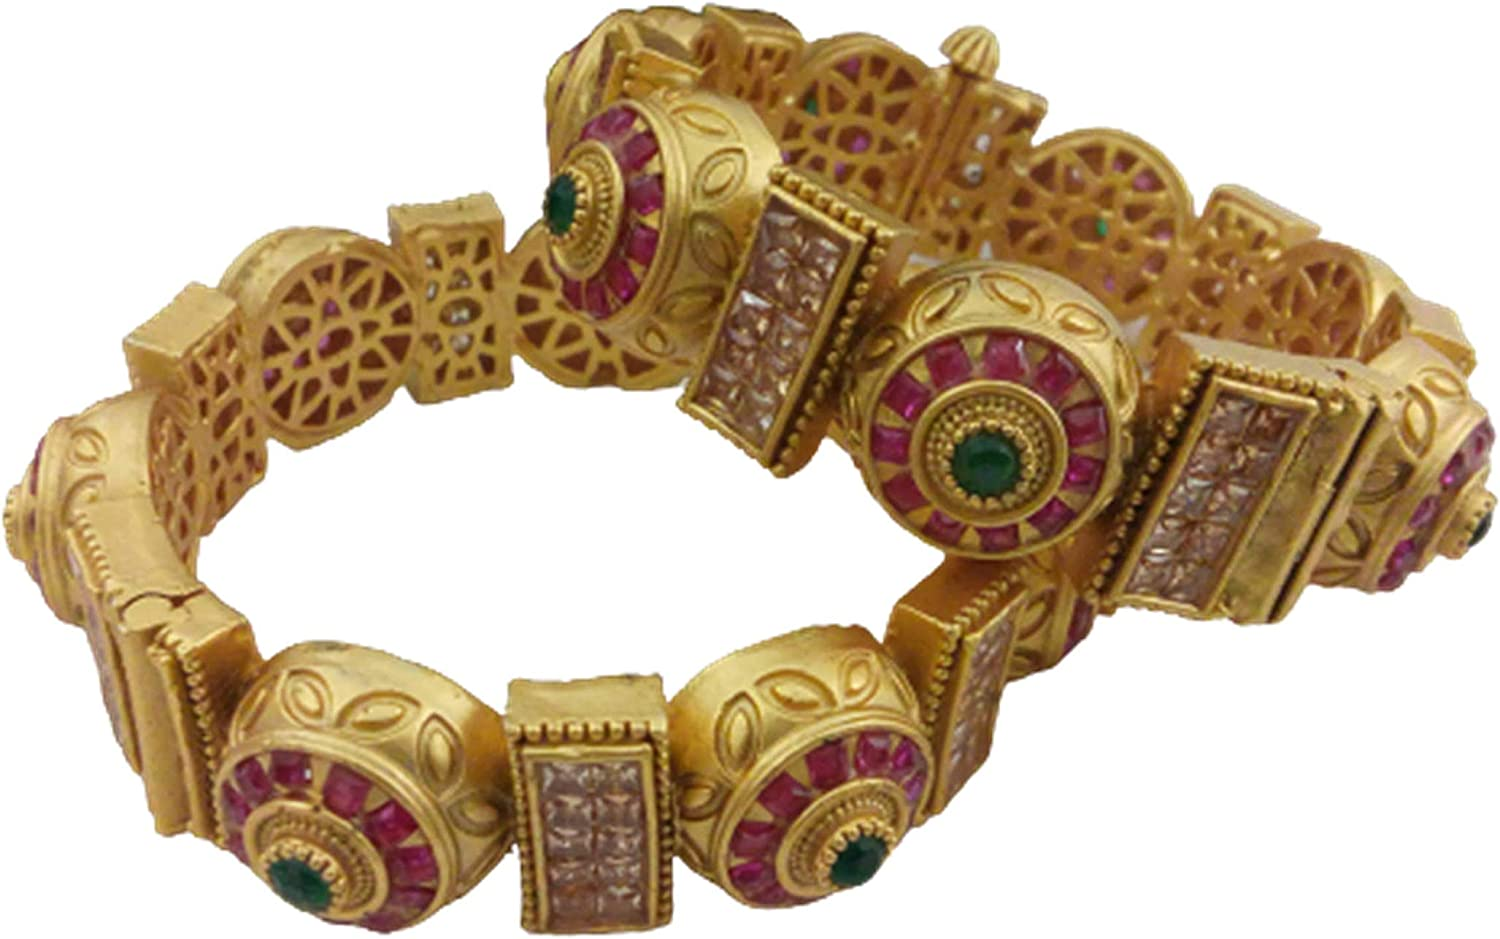 Tezshree (TJ) Indian Style Gold Bangle Set for Women & Girls, Valentine Gift, Ethnic Jewelry, Artificial Fashion